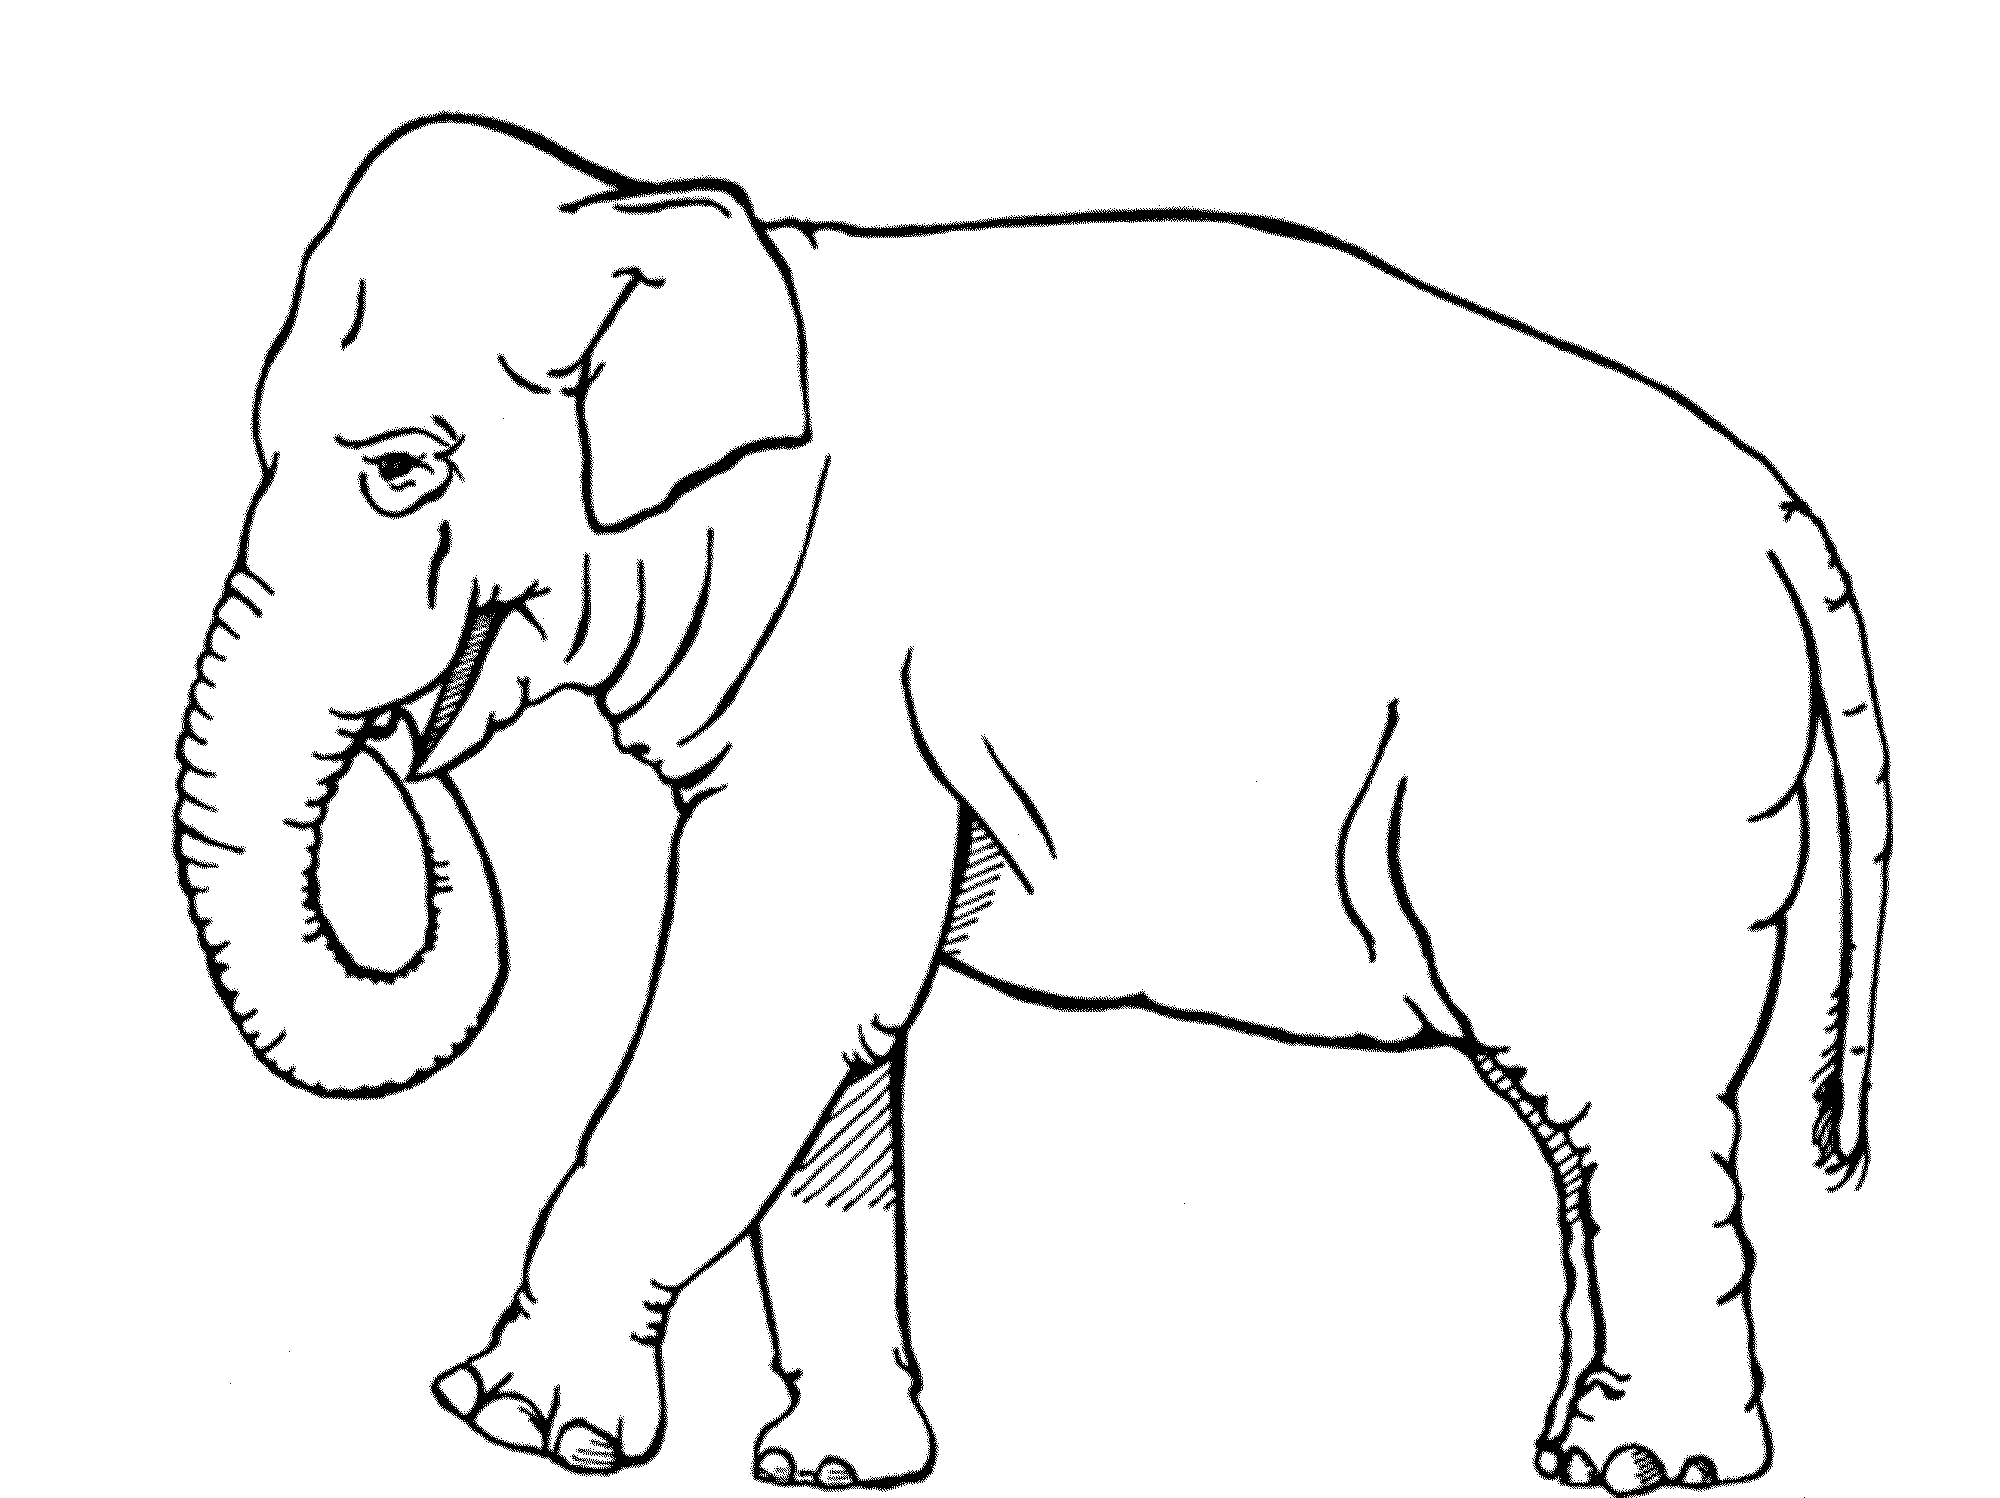 elephant coloring picture print download teaching kids through elephant coloring coloring picture elephant